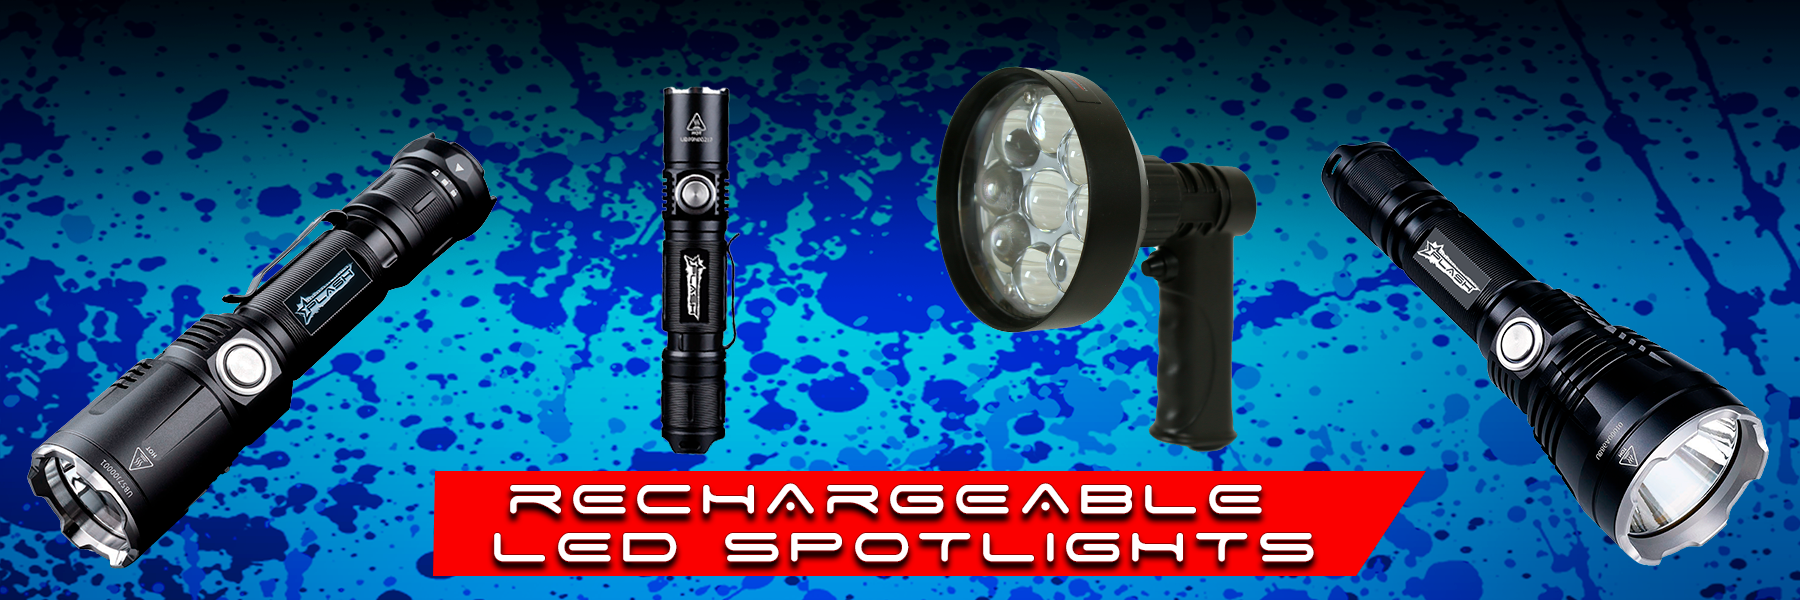 Rechargeable LED Spotlights